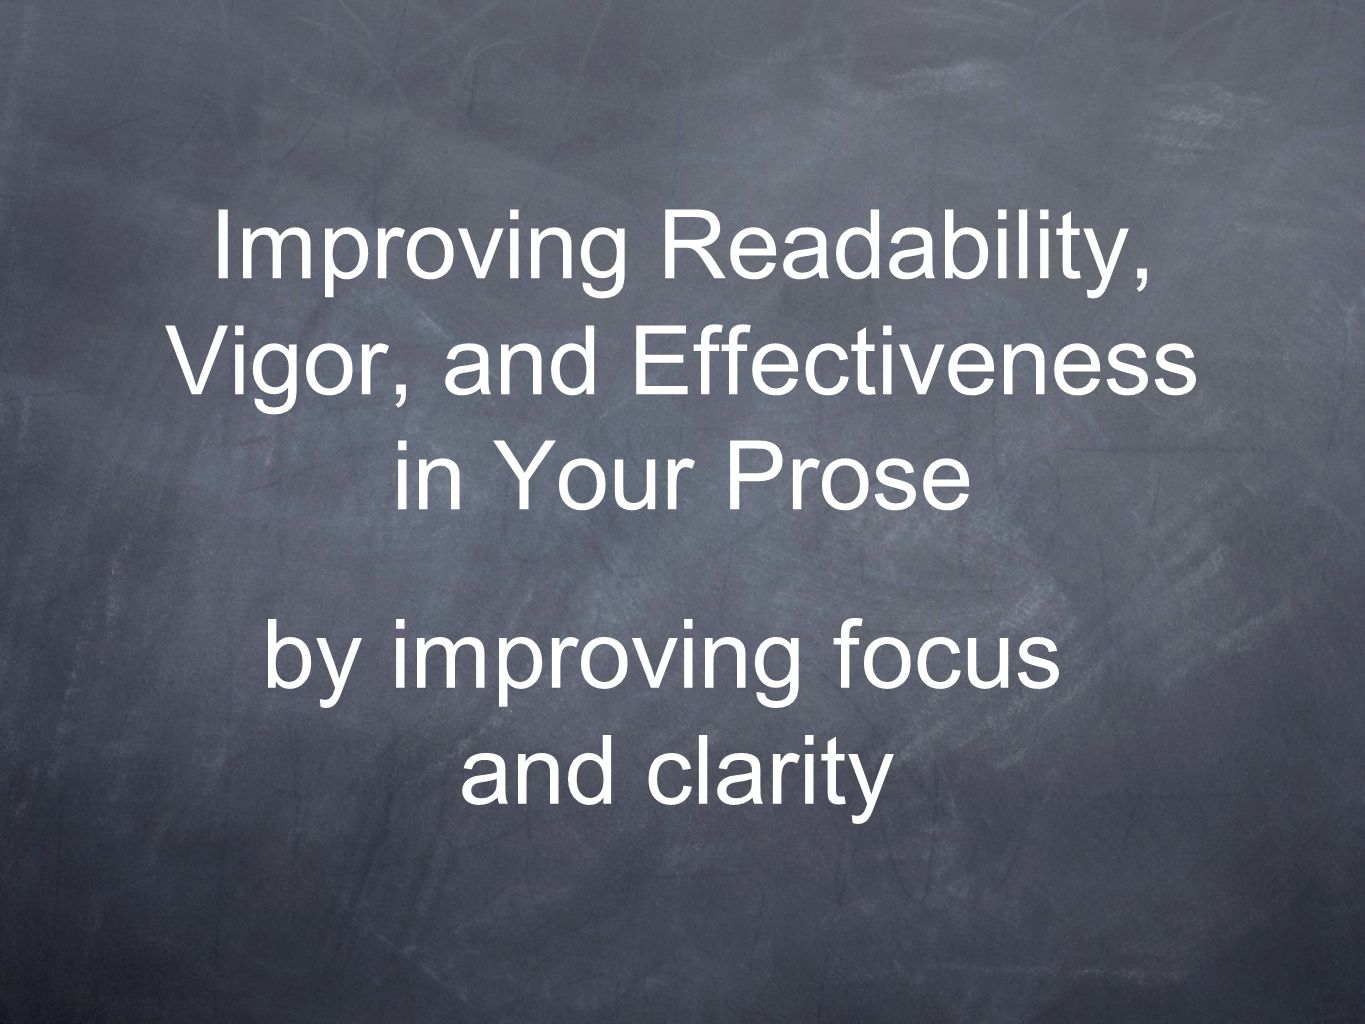 Improving Readability, Vigor, and Effectiveness in Your Prose by improving focus and clarity